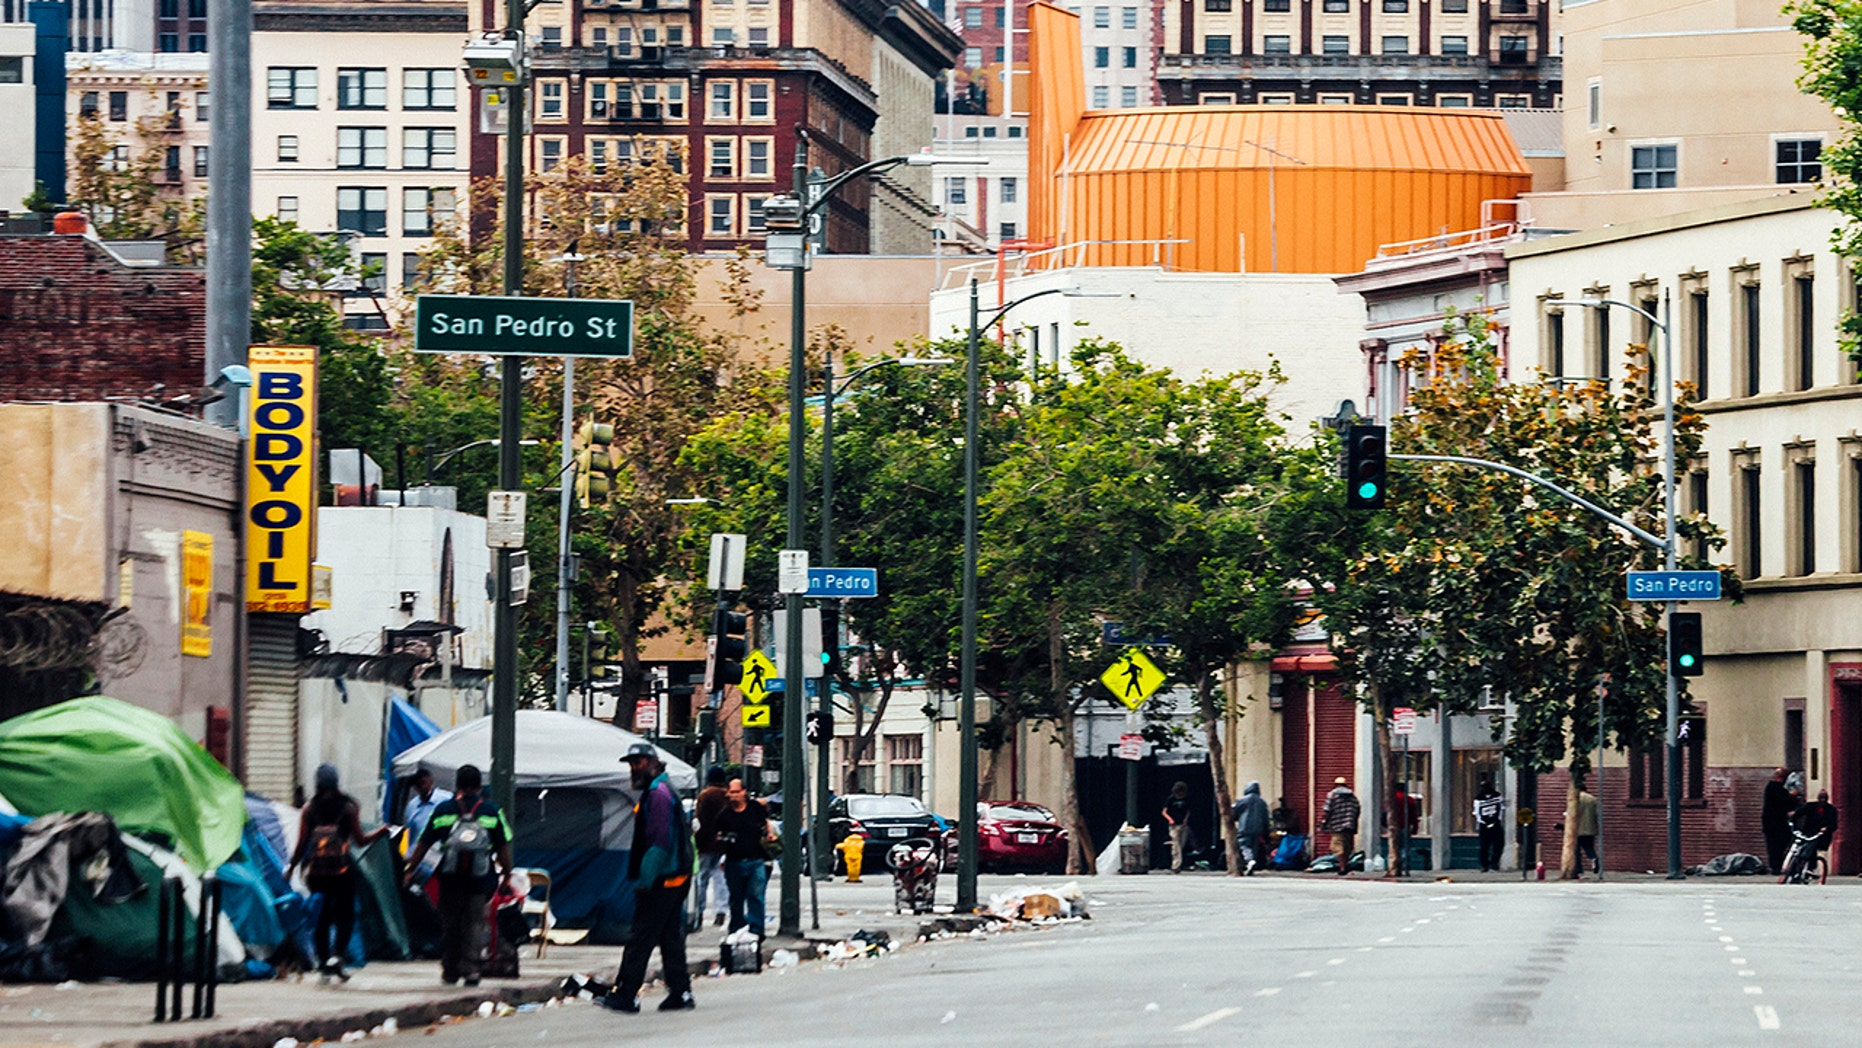 Los Angeles prosecutors say a voter fraud scheme has been uncovered in which homeless on Skid Row were being offered cash and cigarettes in exchange for their signatures.